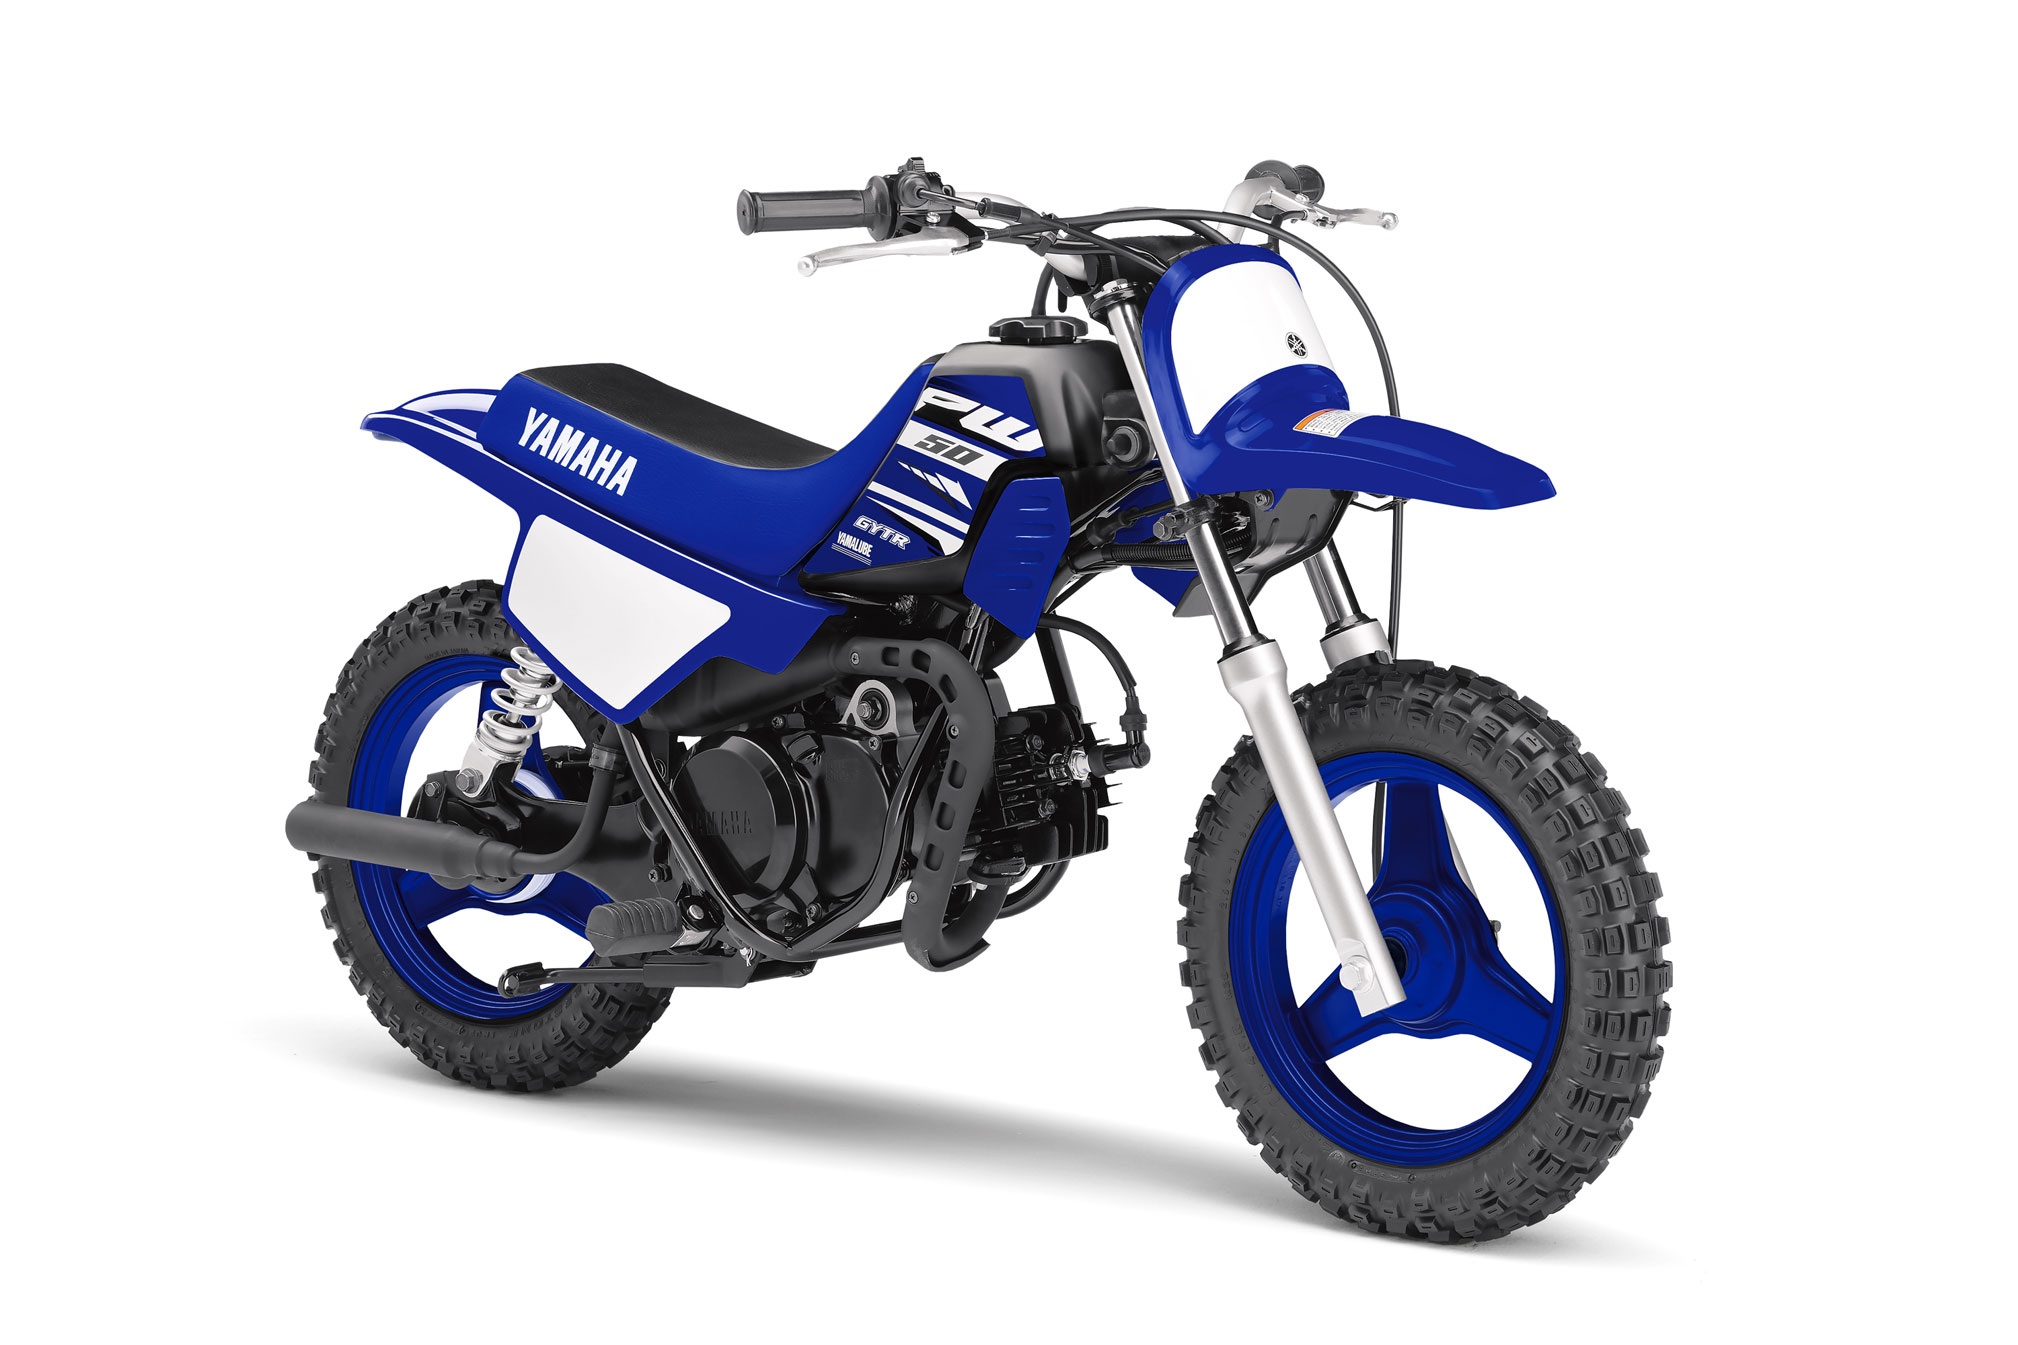 2018 yamaha pw50 review totalmotorcycle